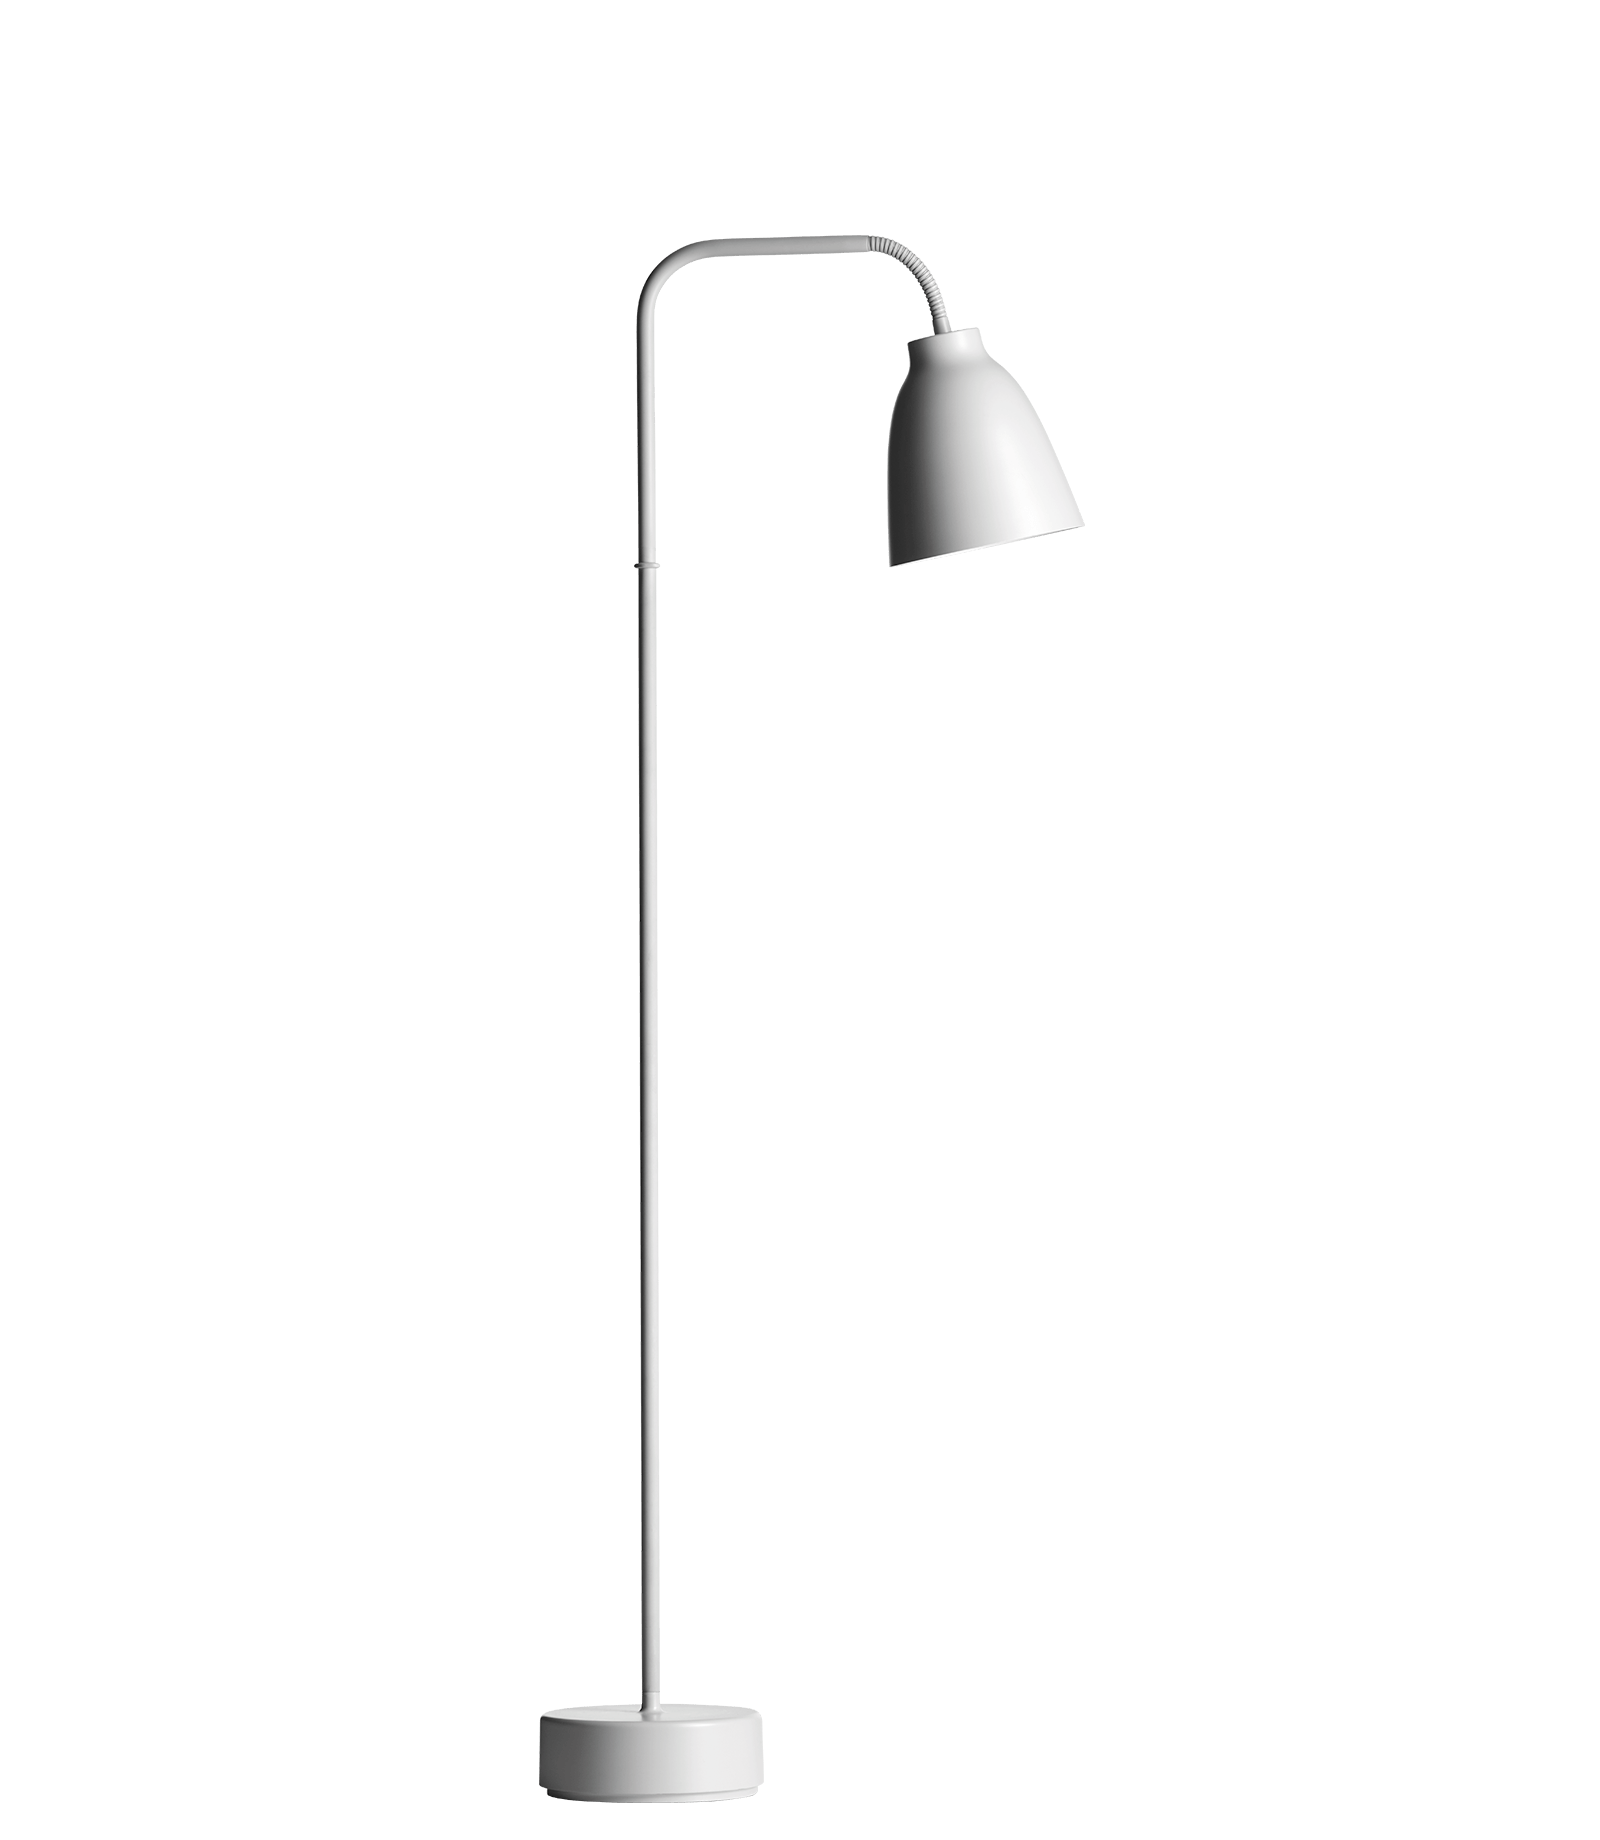 Caravaggio read floor lamp by light years now at nordic urban caravaggio read floor lamp by light years greay mozeypictures Image collections